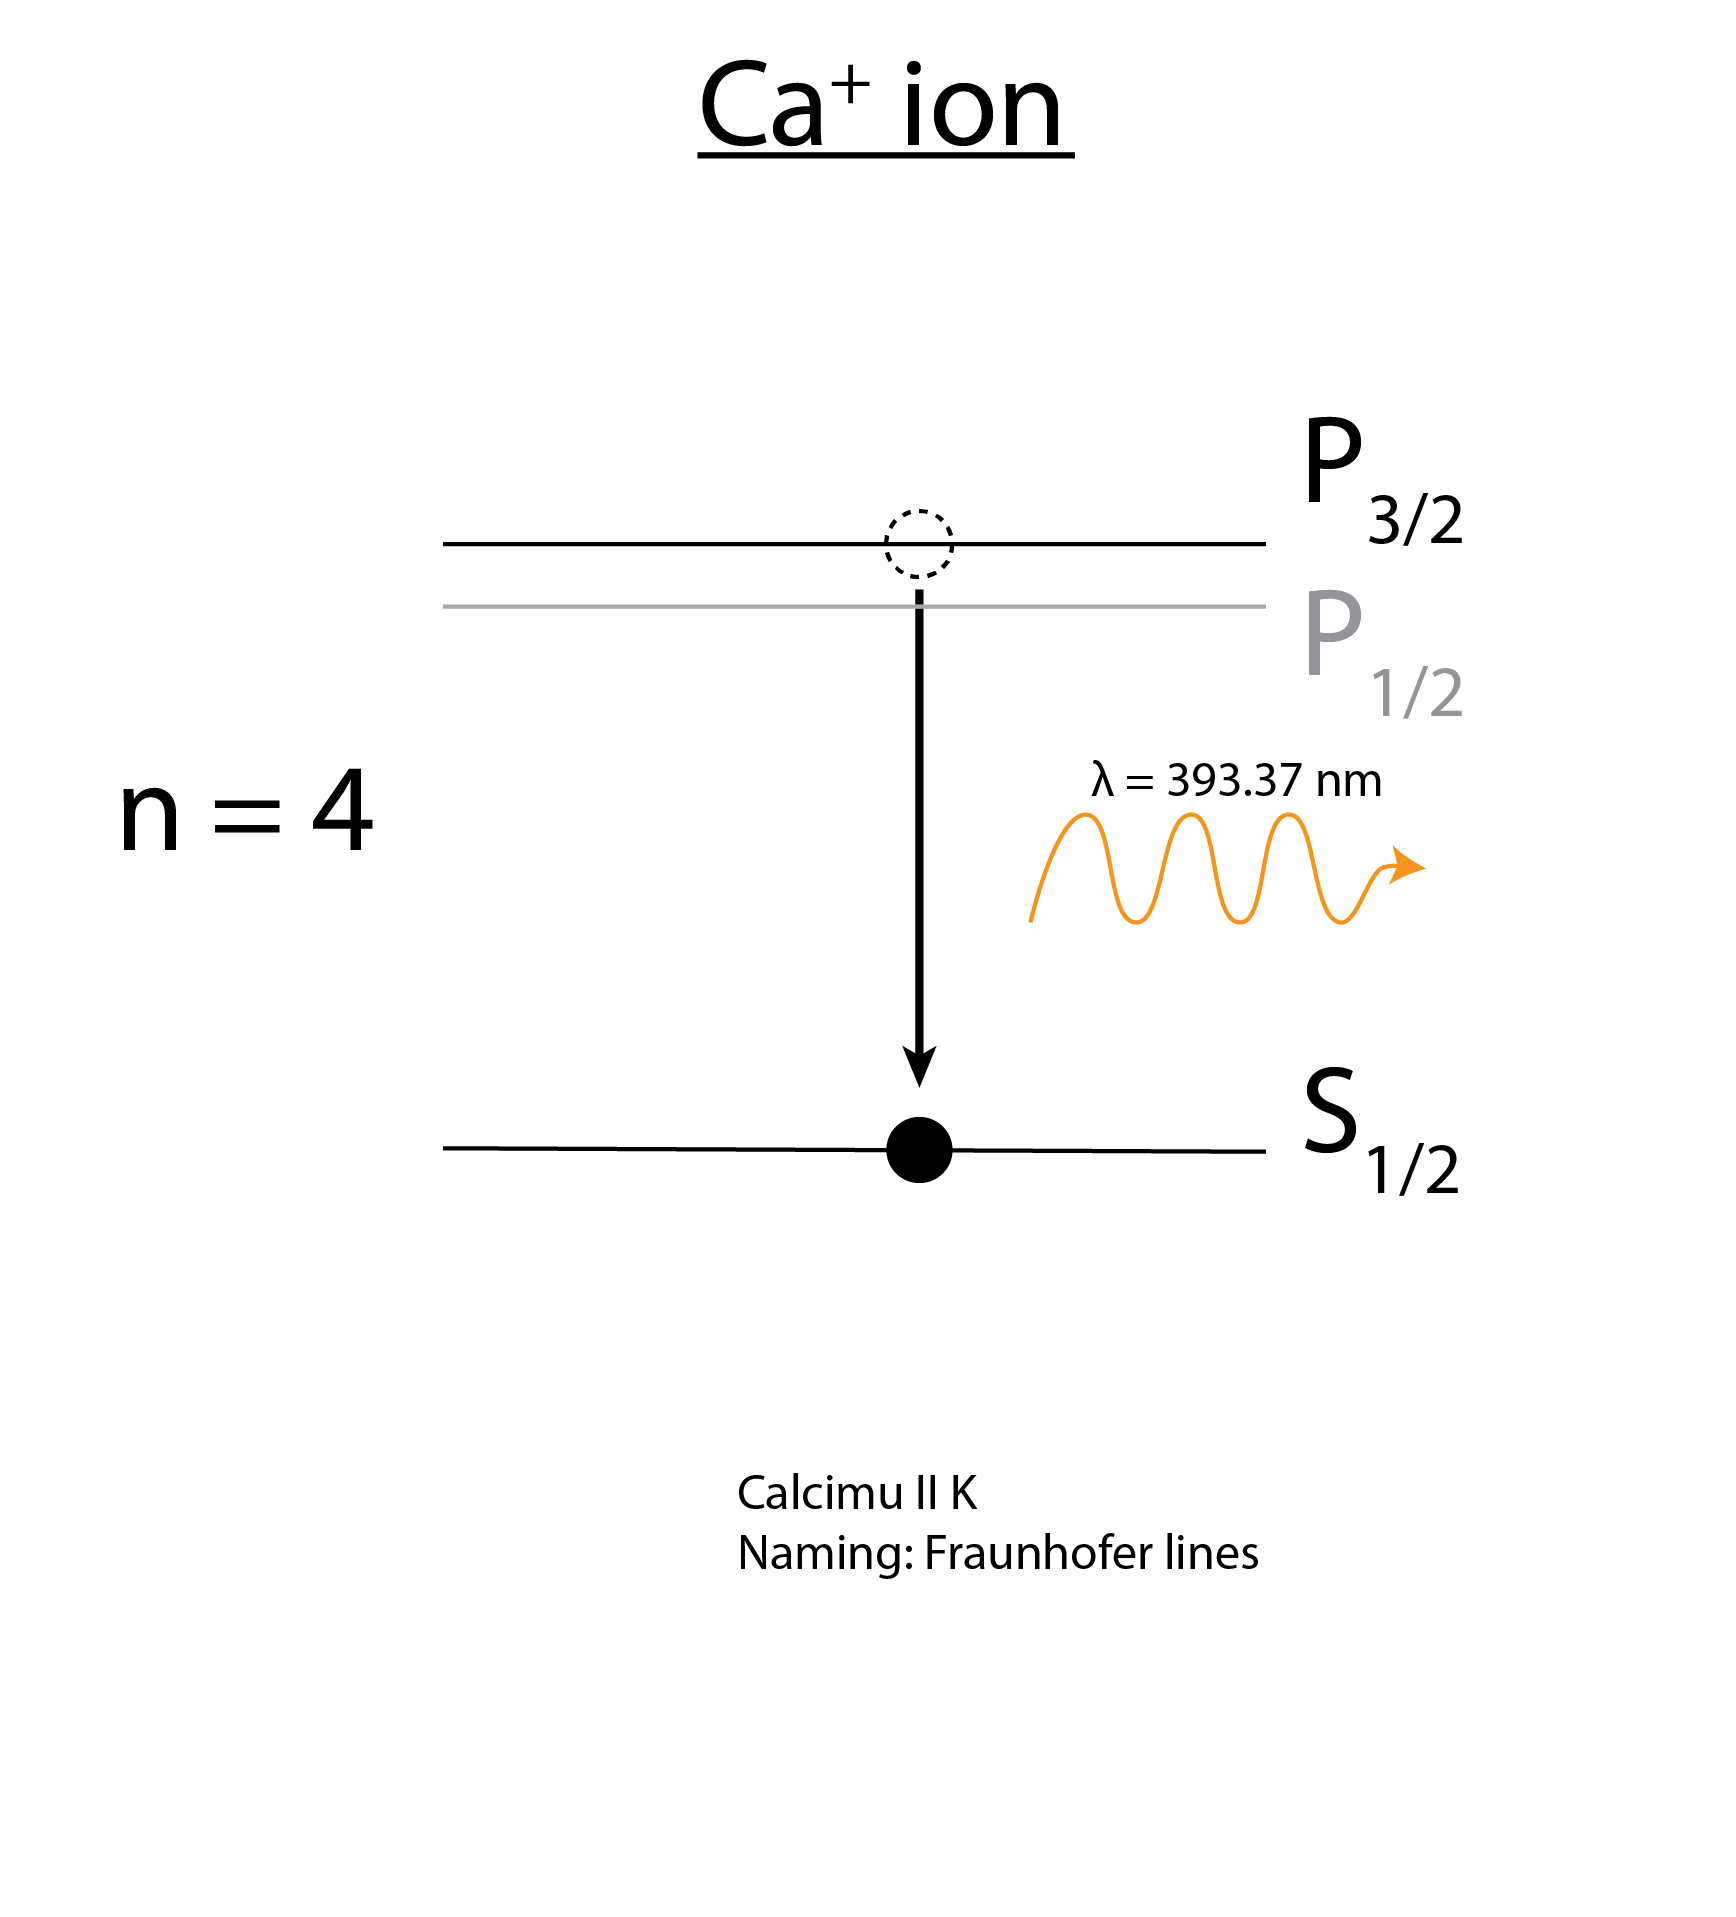 there is also an emission line corresponding to the transition from p1/2  state to s1/2 state within the calicum ion, which is named